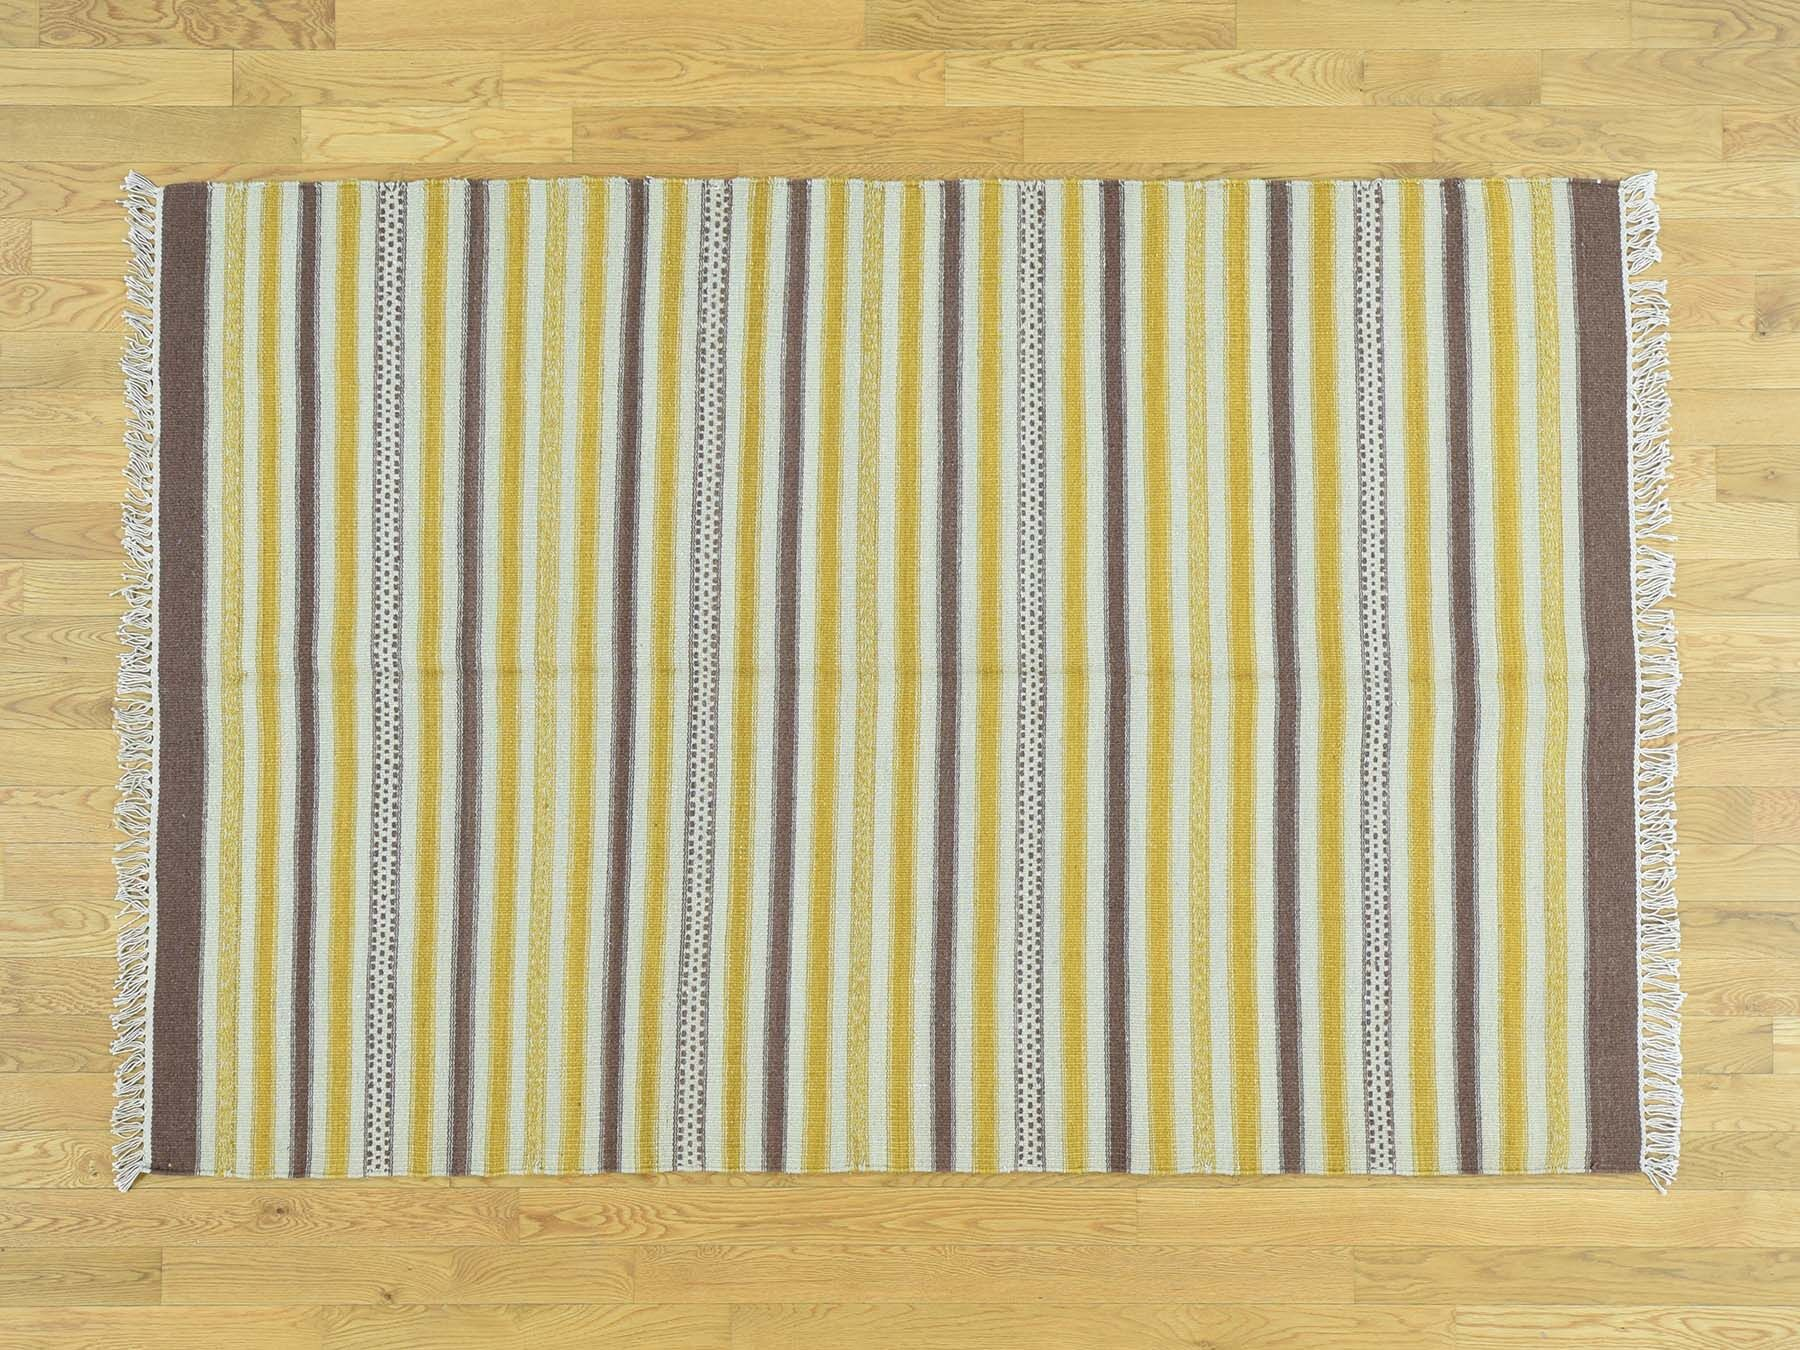 One-of-a-Kind Bertram Striped Handmade Kilim Brown/Purple Wool Area Rug